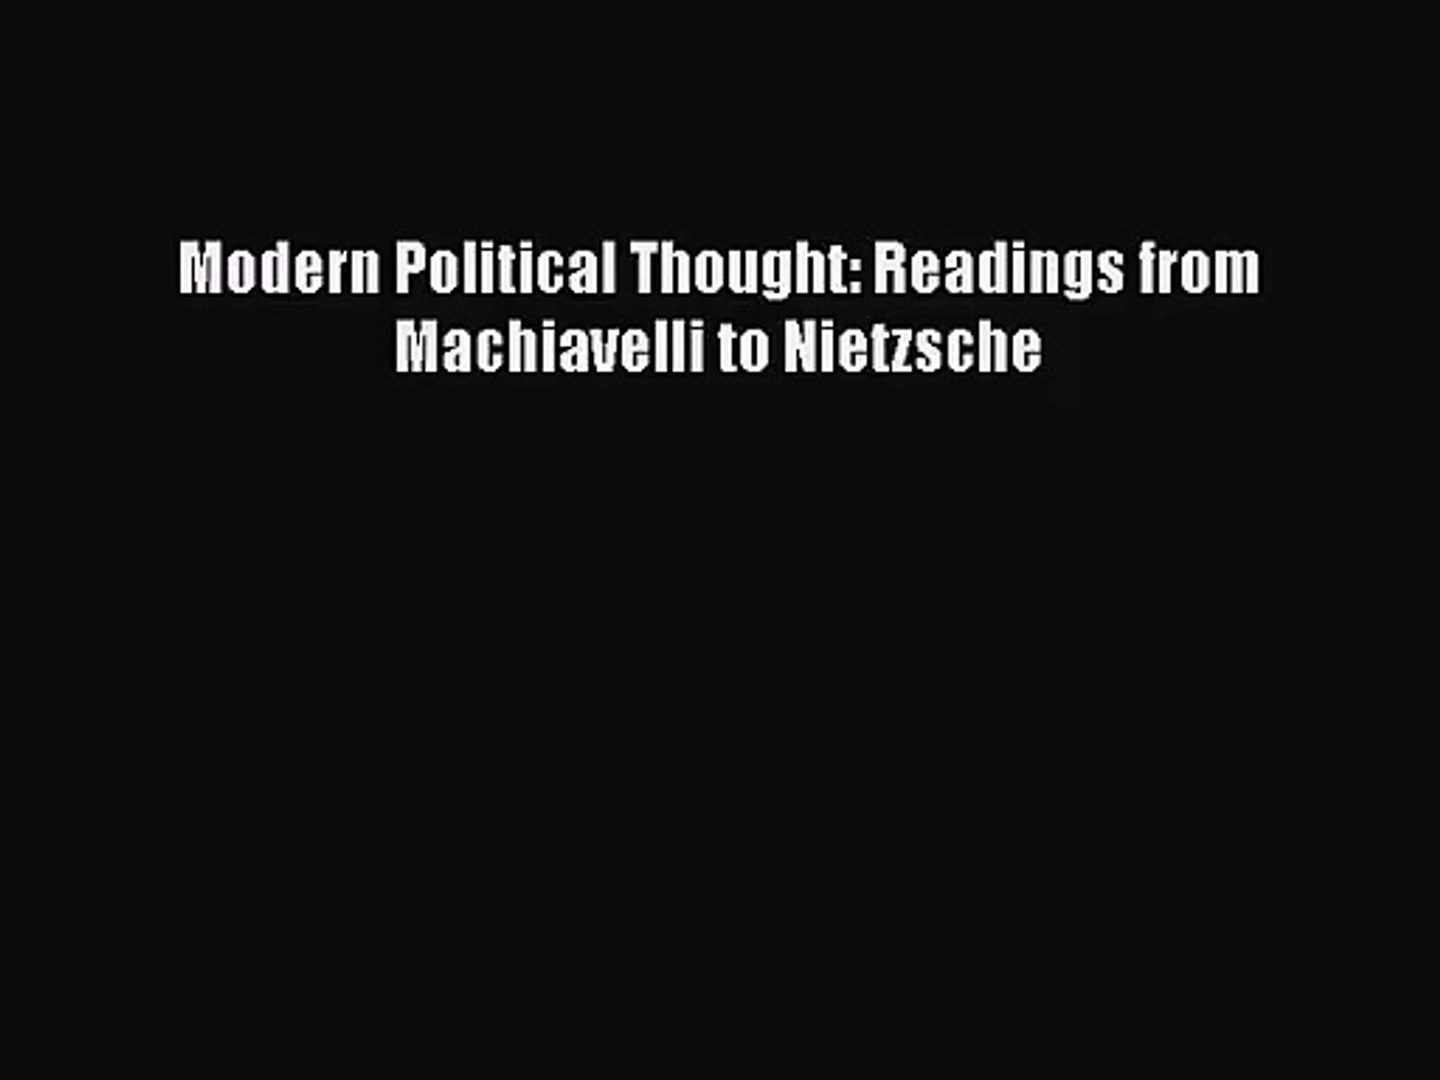 Readings from Machiavelli to Nietzsche Modern Political Thought